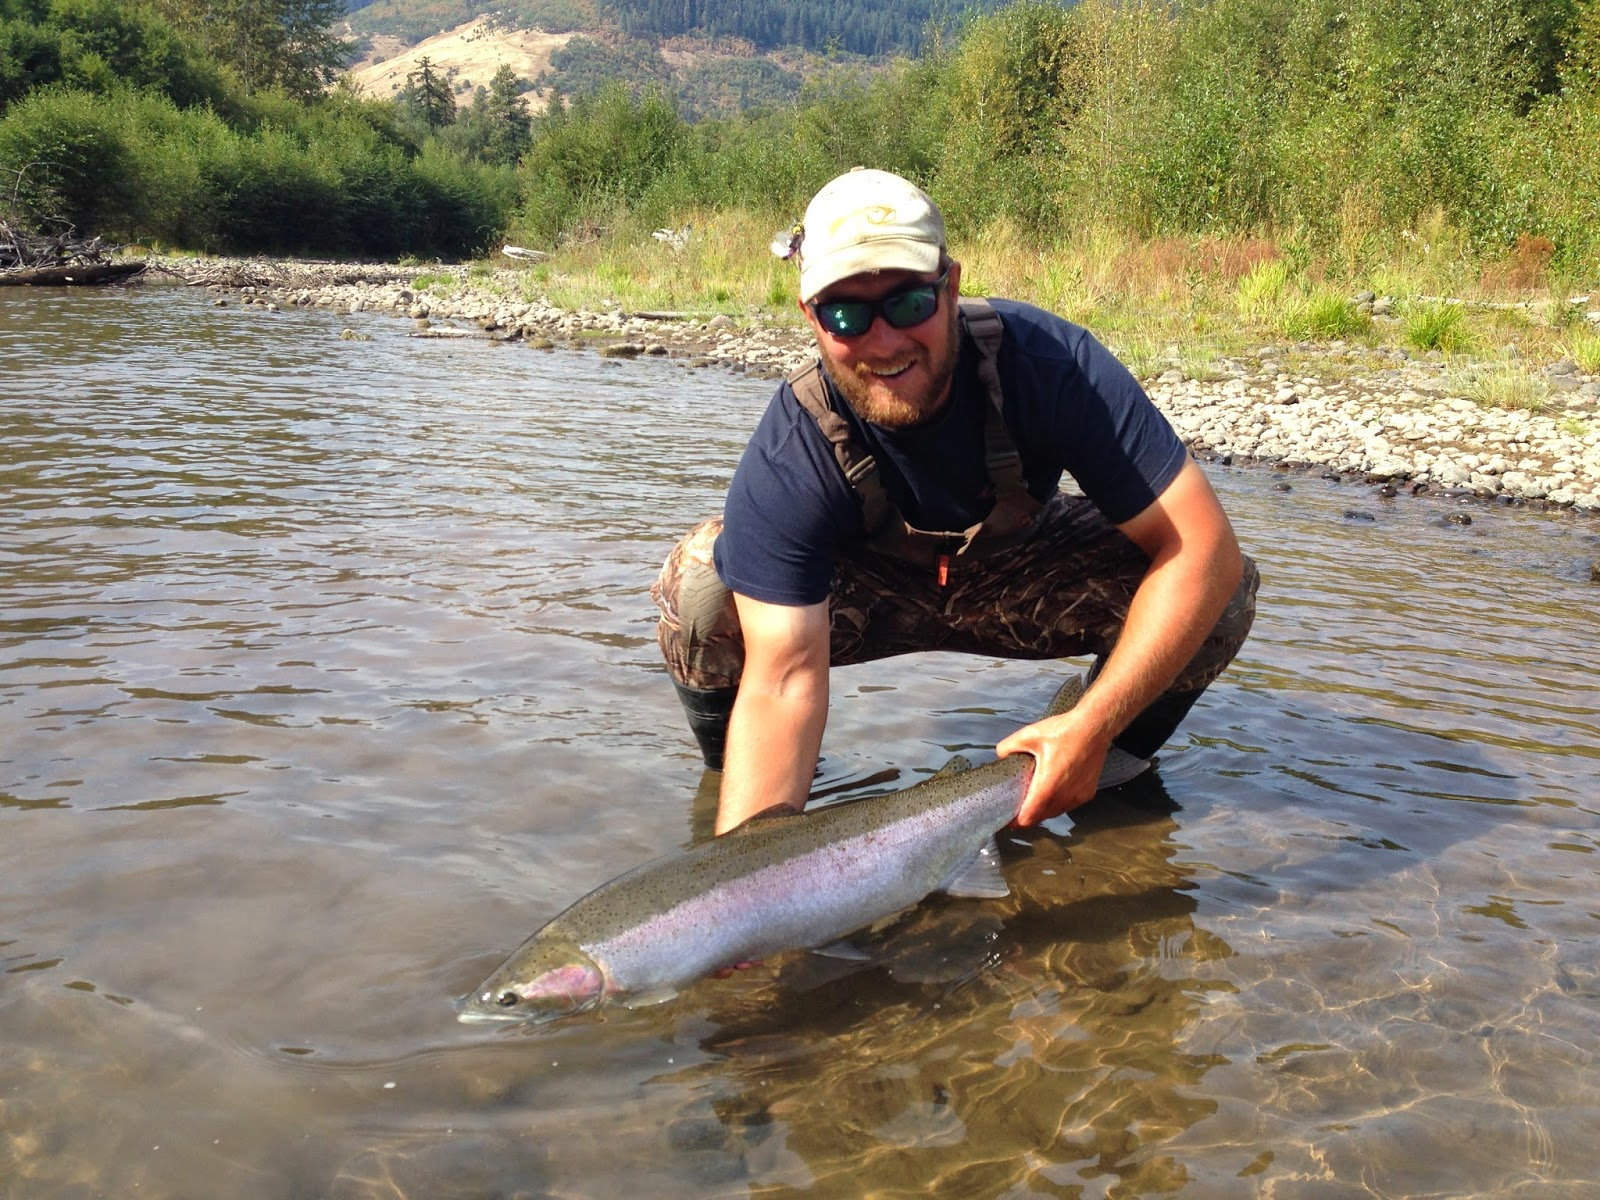 The evening hatch reports klickitat river report 9 18 14 for Klickitat river fishing report